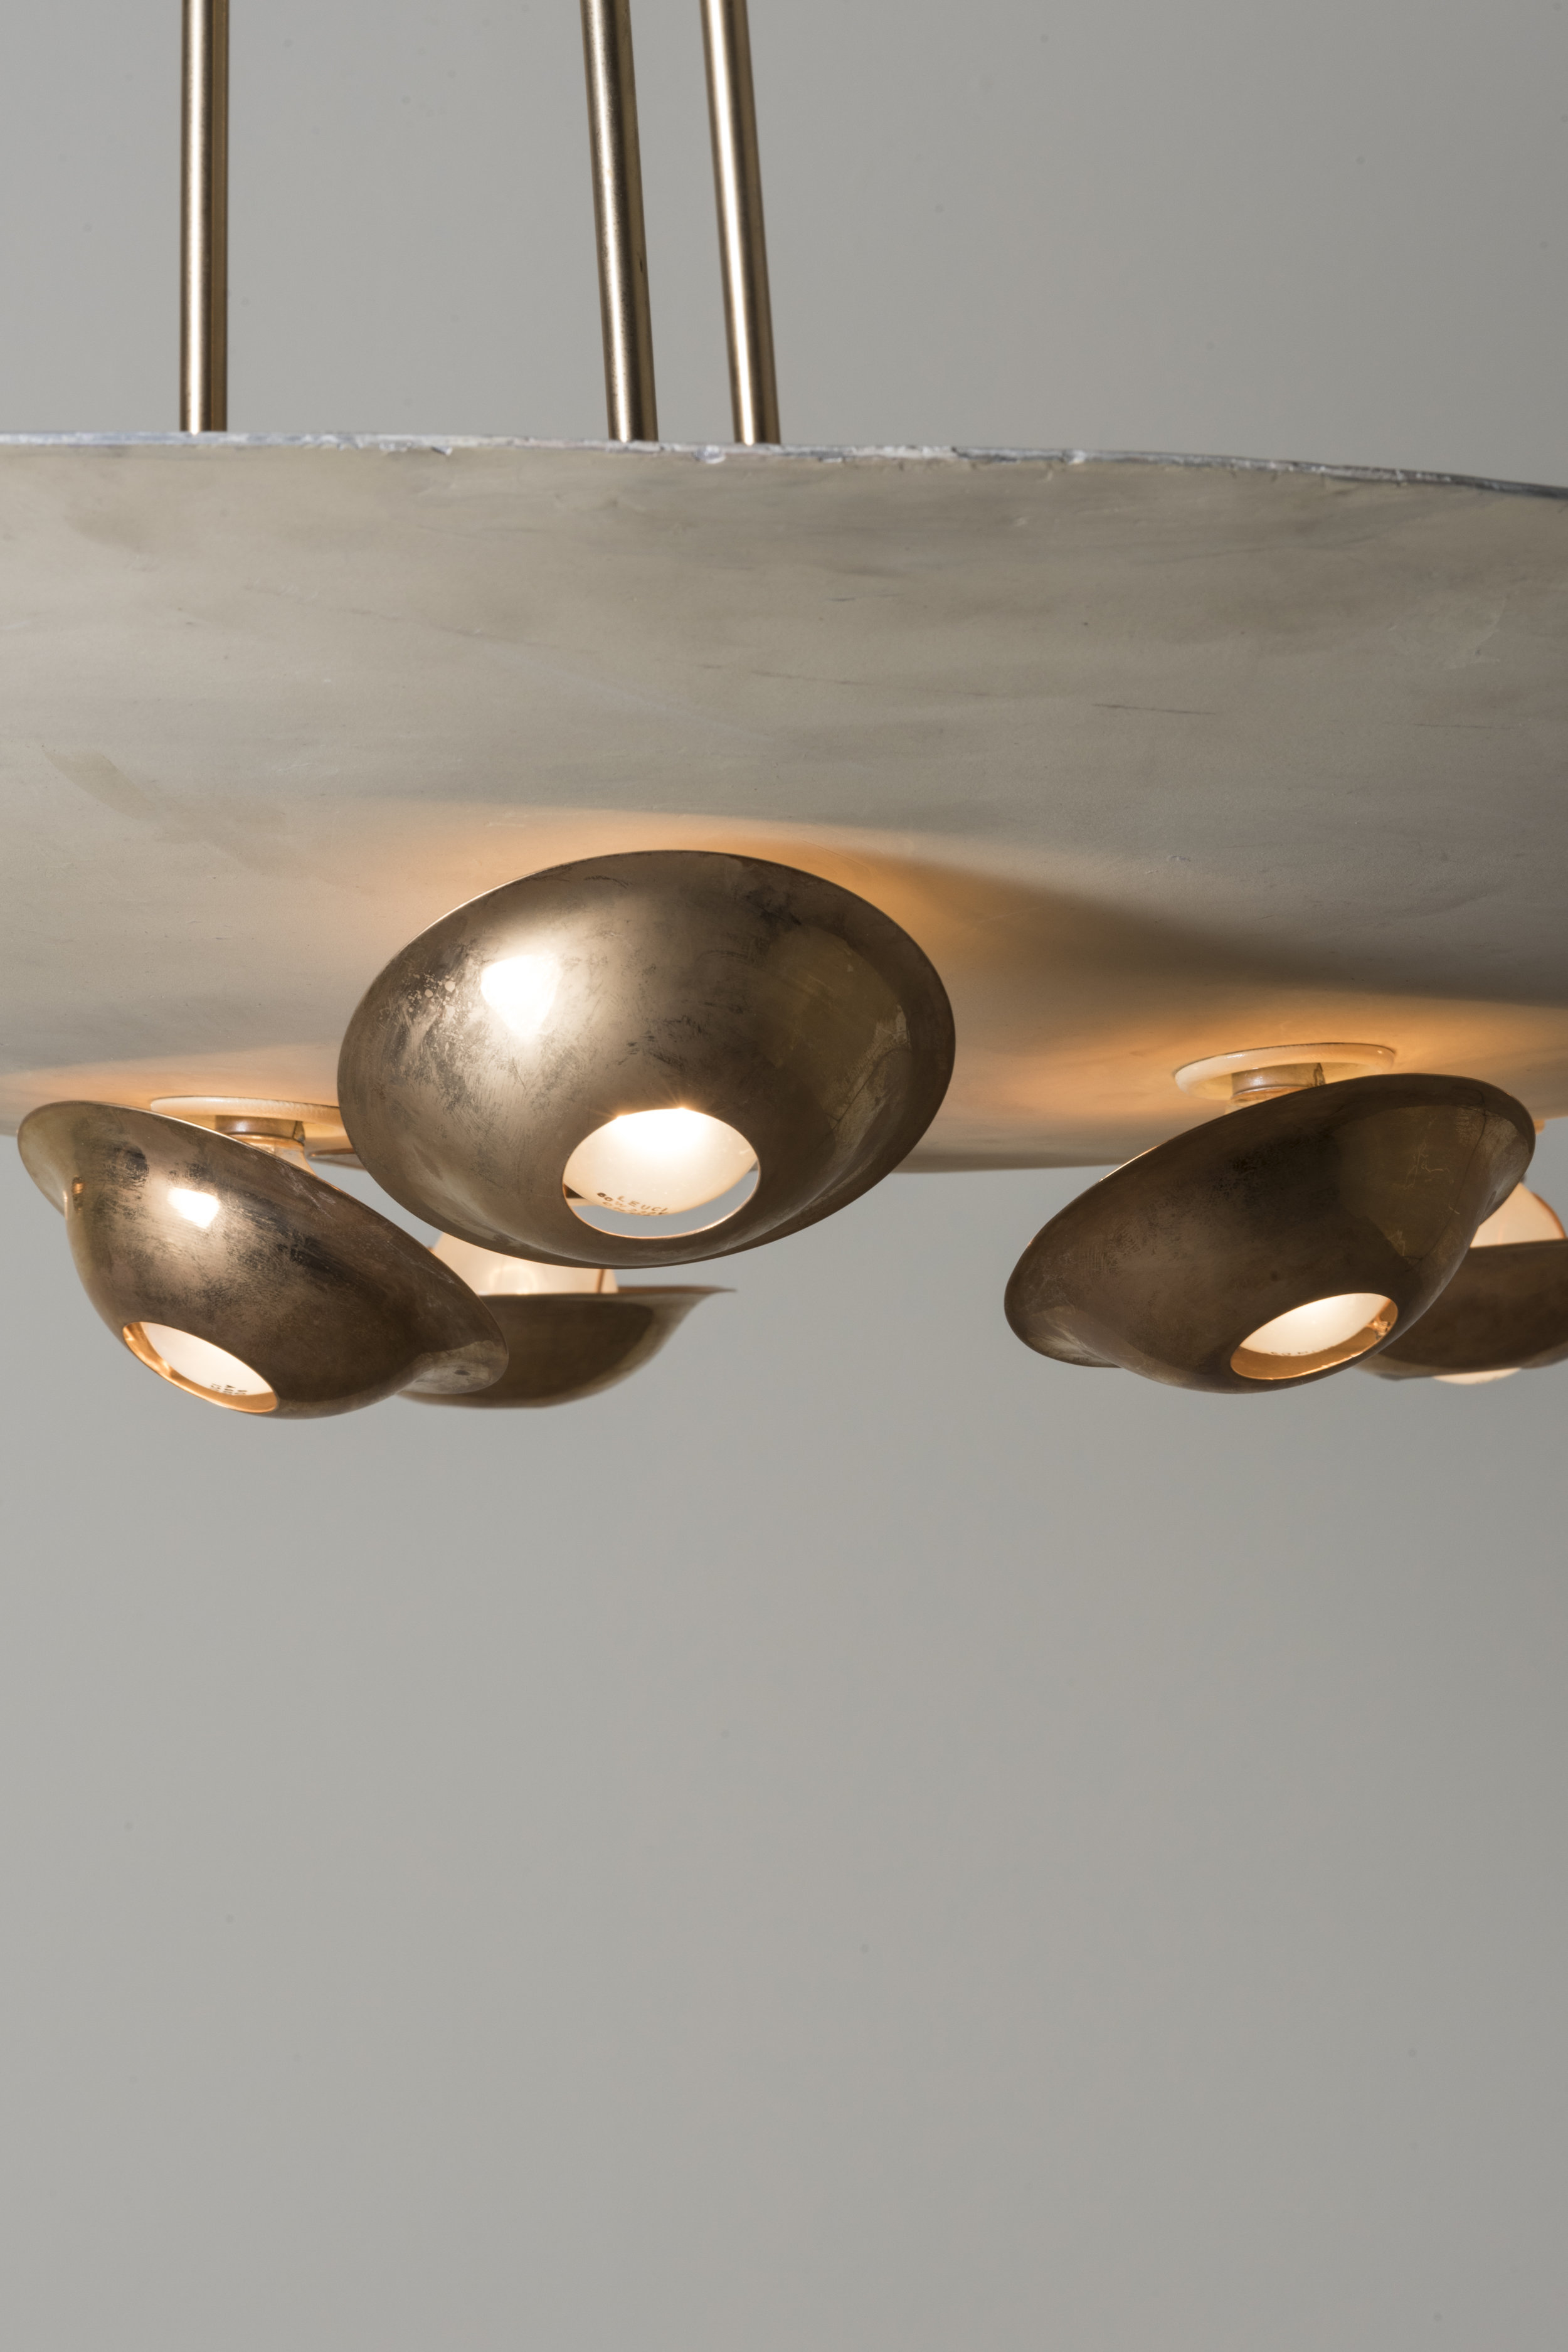 Detail of Ceiling lamp, Italy, 1940s  Design: Gino Sarfatti Manufactured and signed by Arteluce  ⓒ Nilufar Gallery